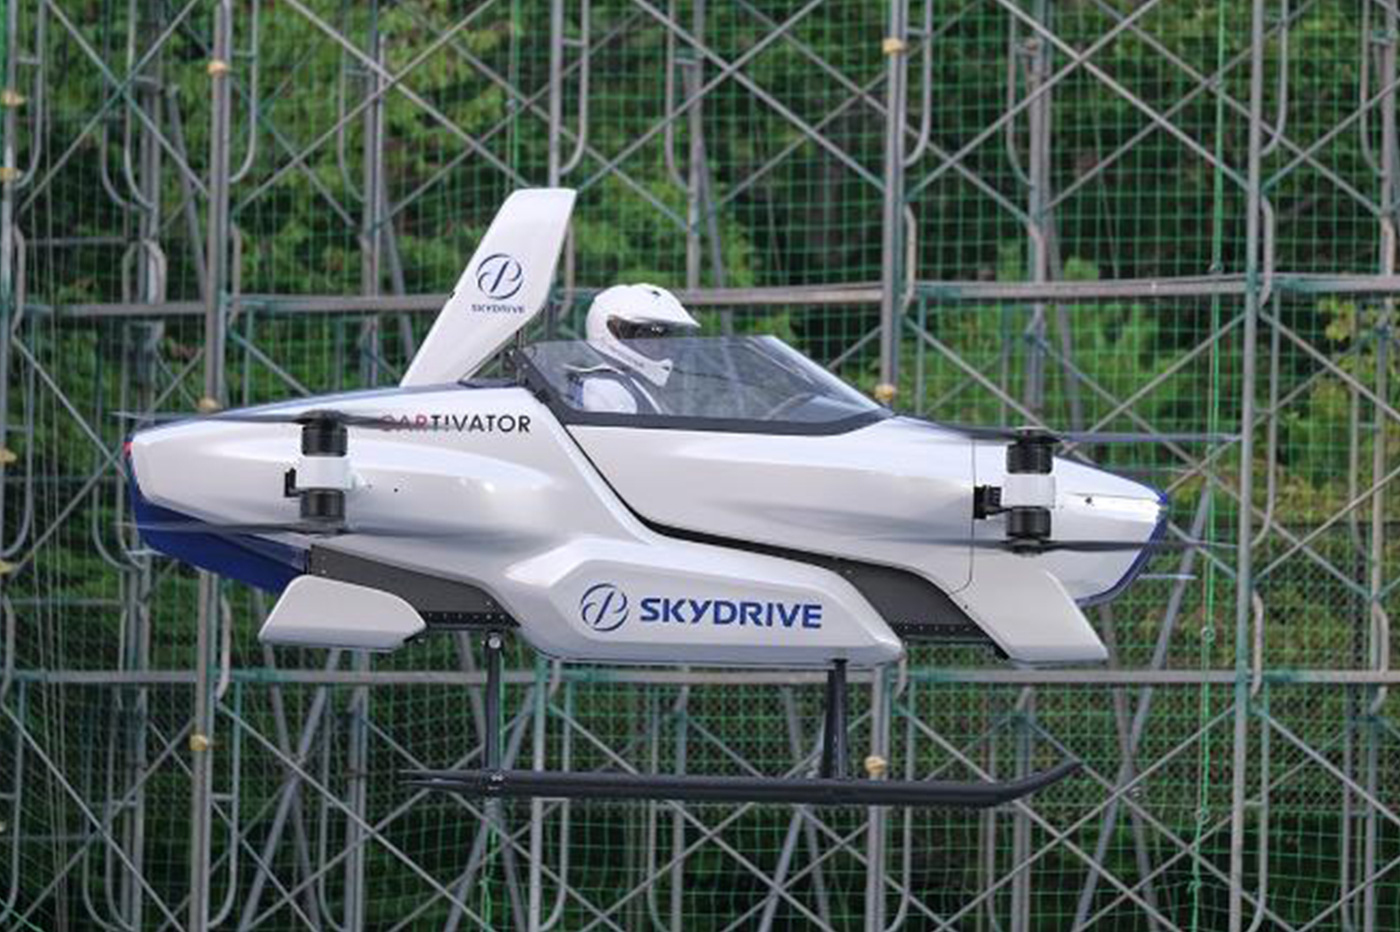 SkyDrive voiture volante